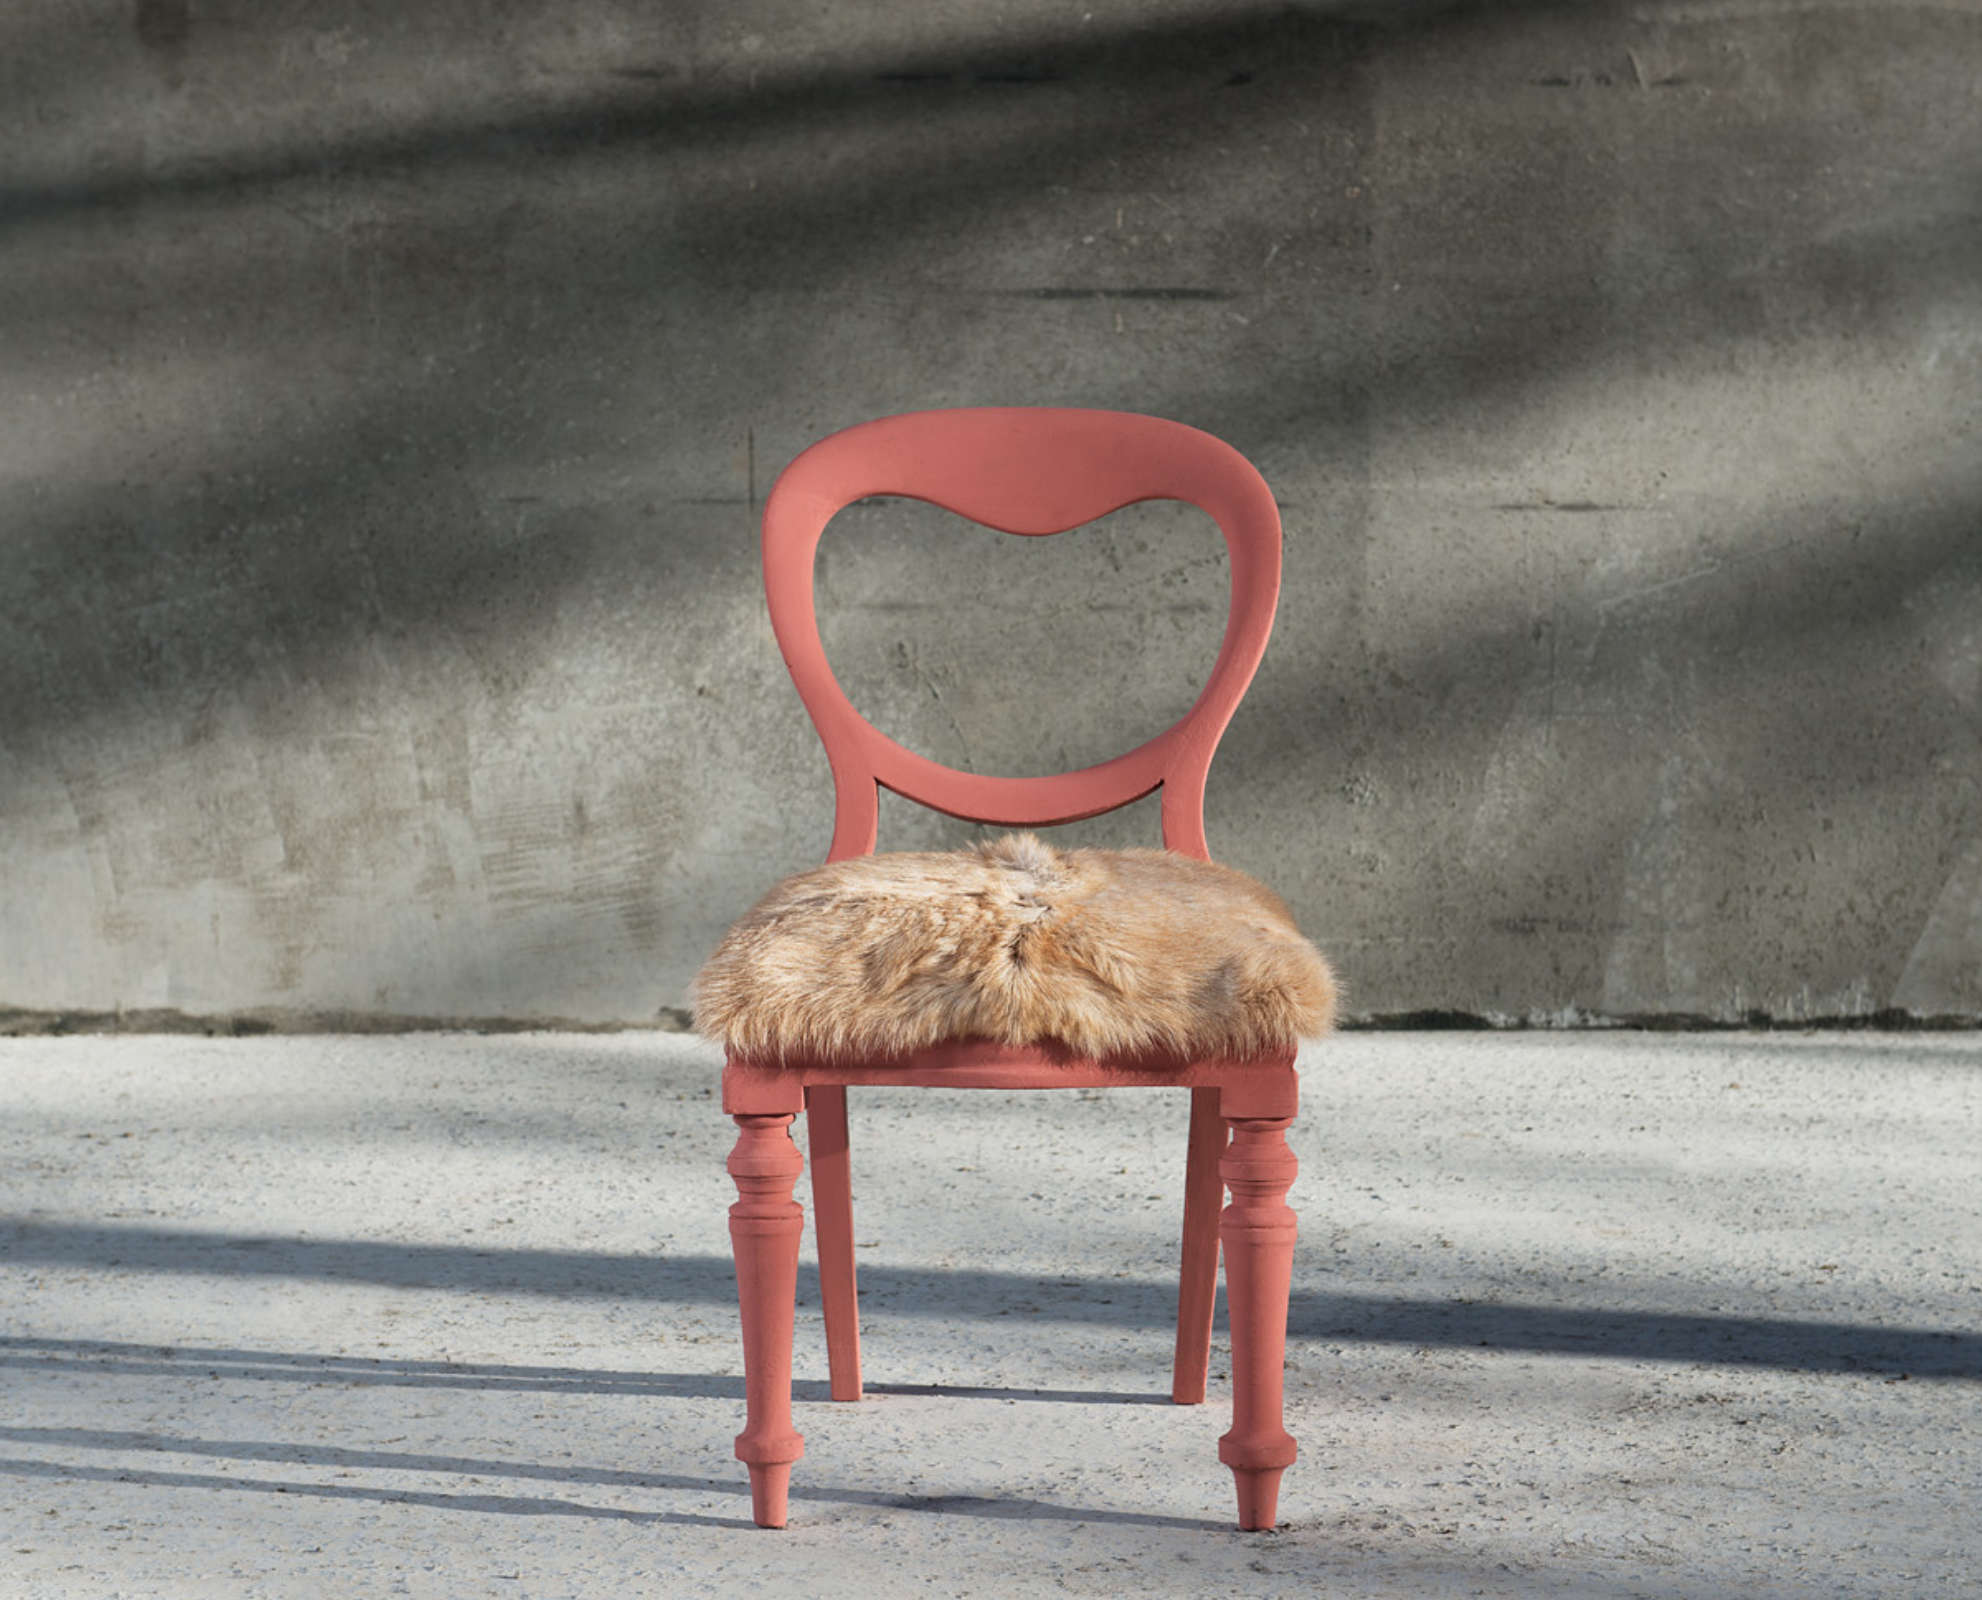 just-kidding-chair-pvbbc